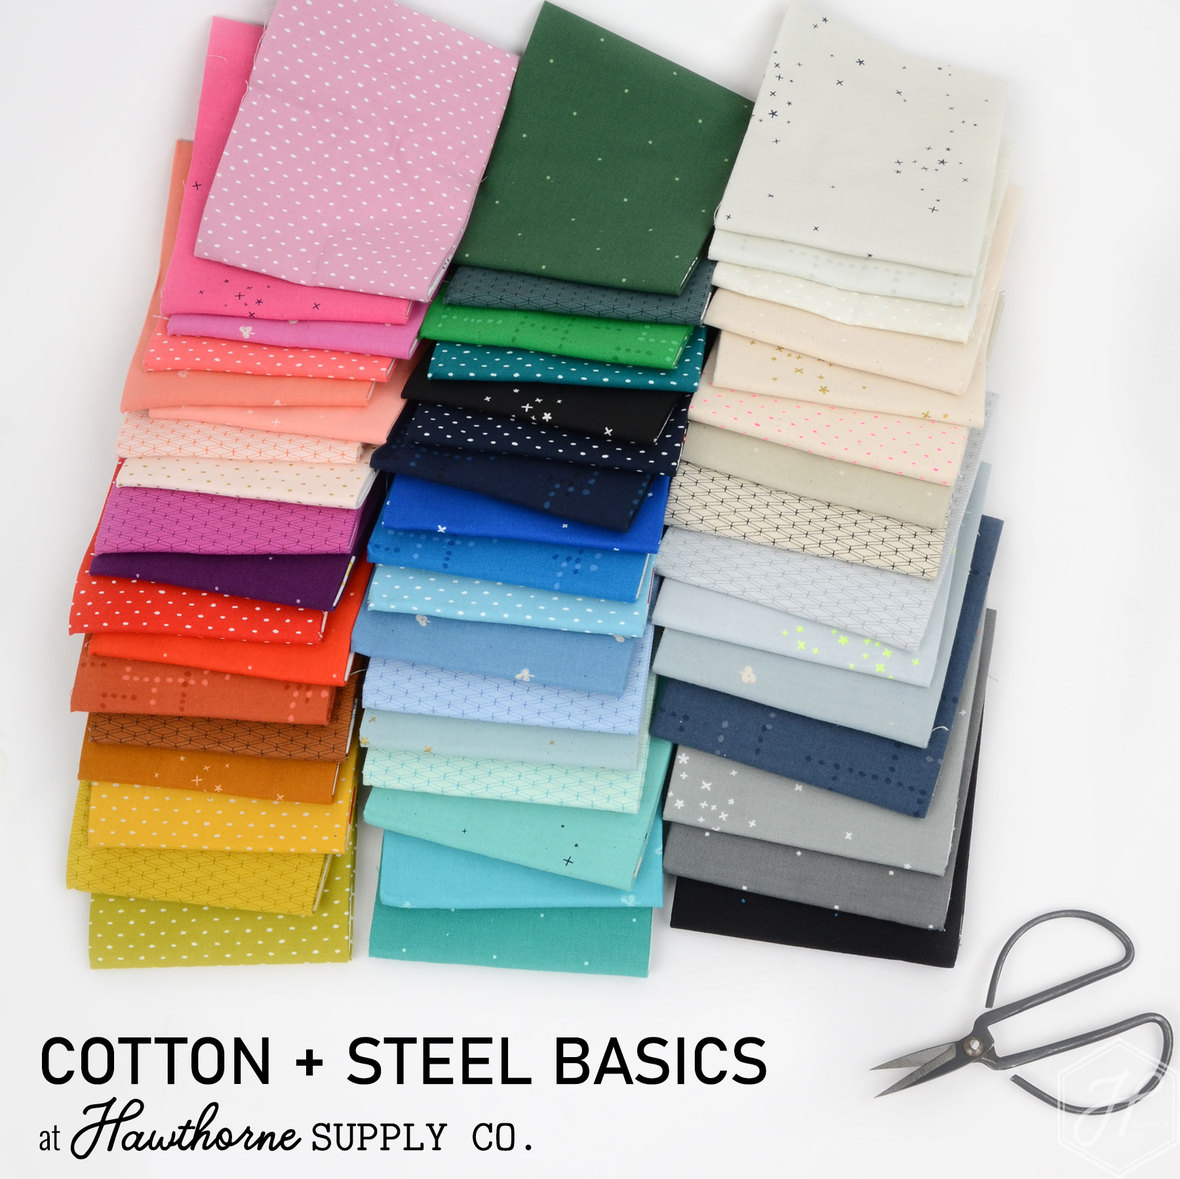 Cotton-and-Steel-Basics-at-Hawthorne-Supply-Co